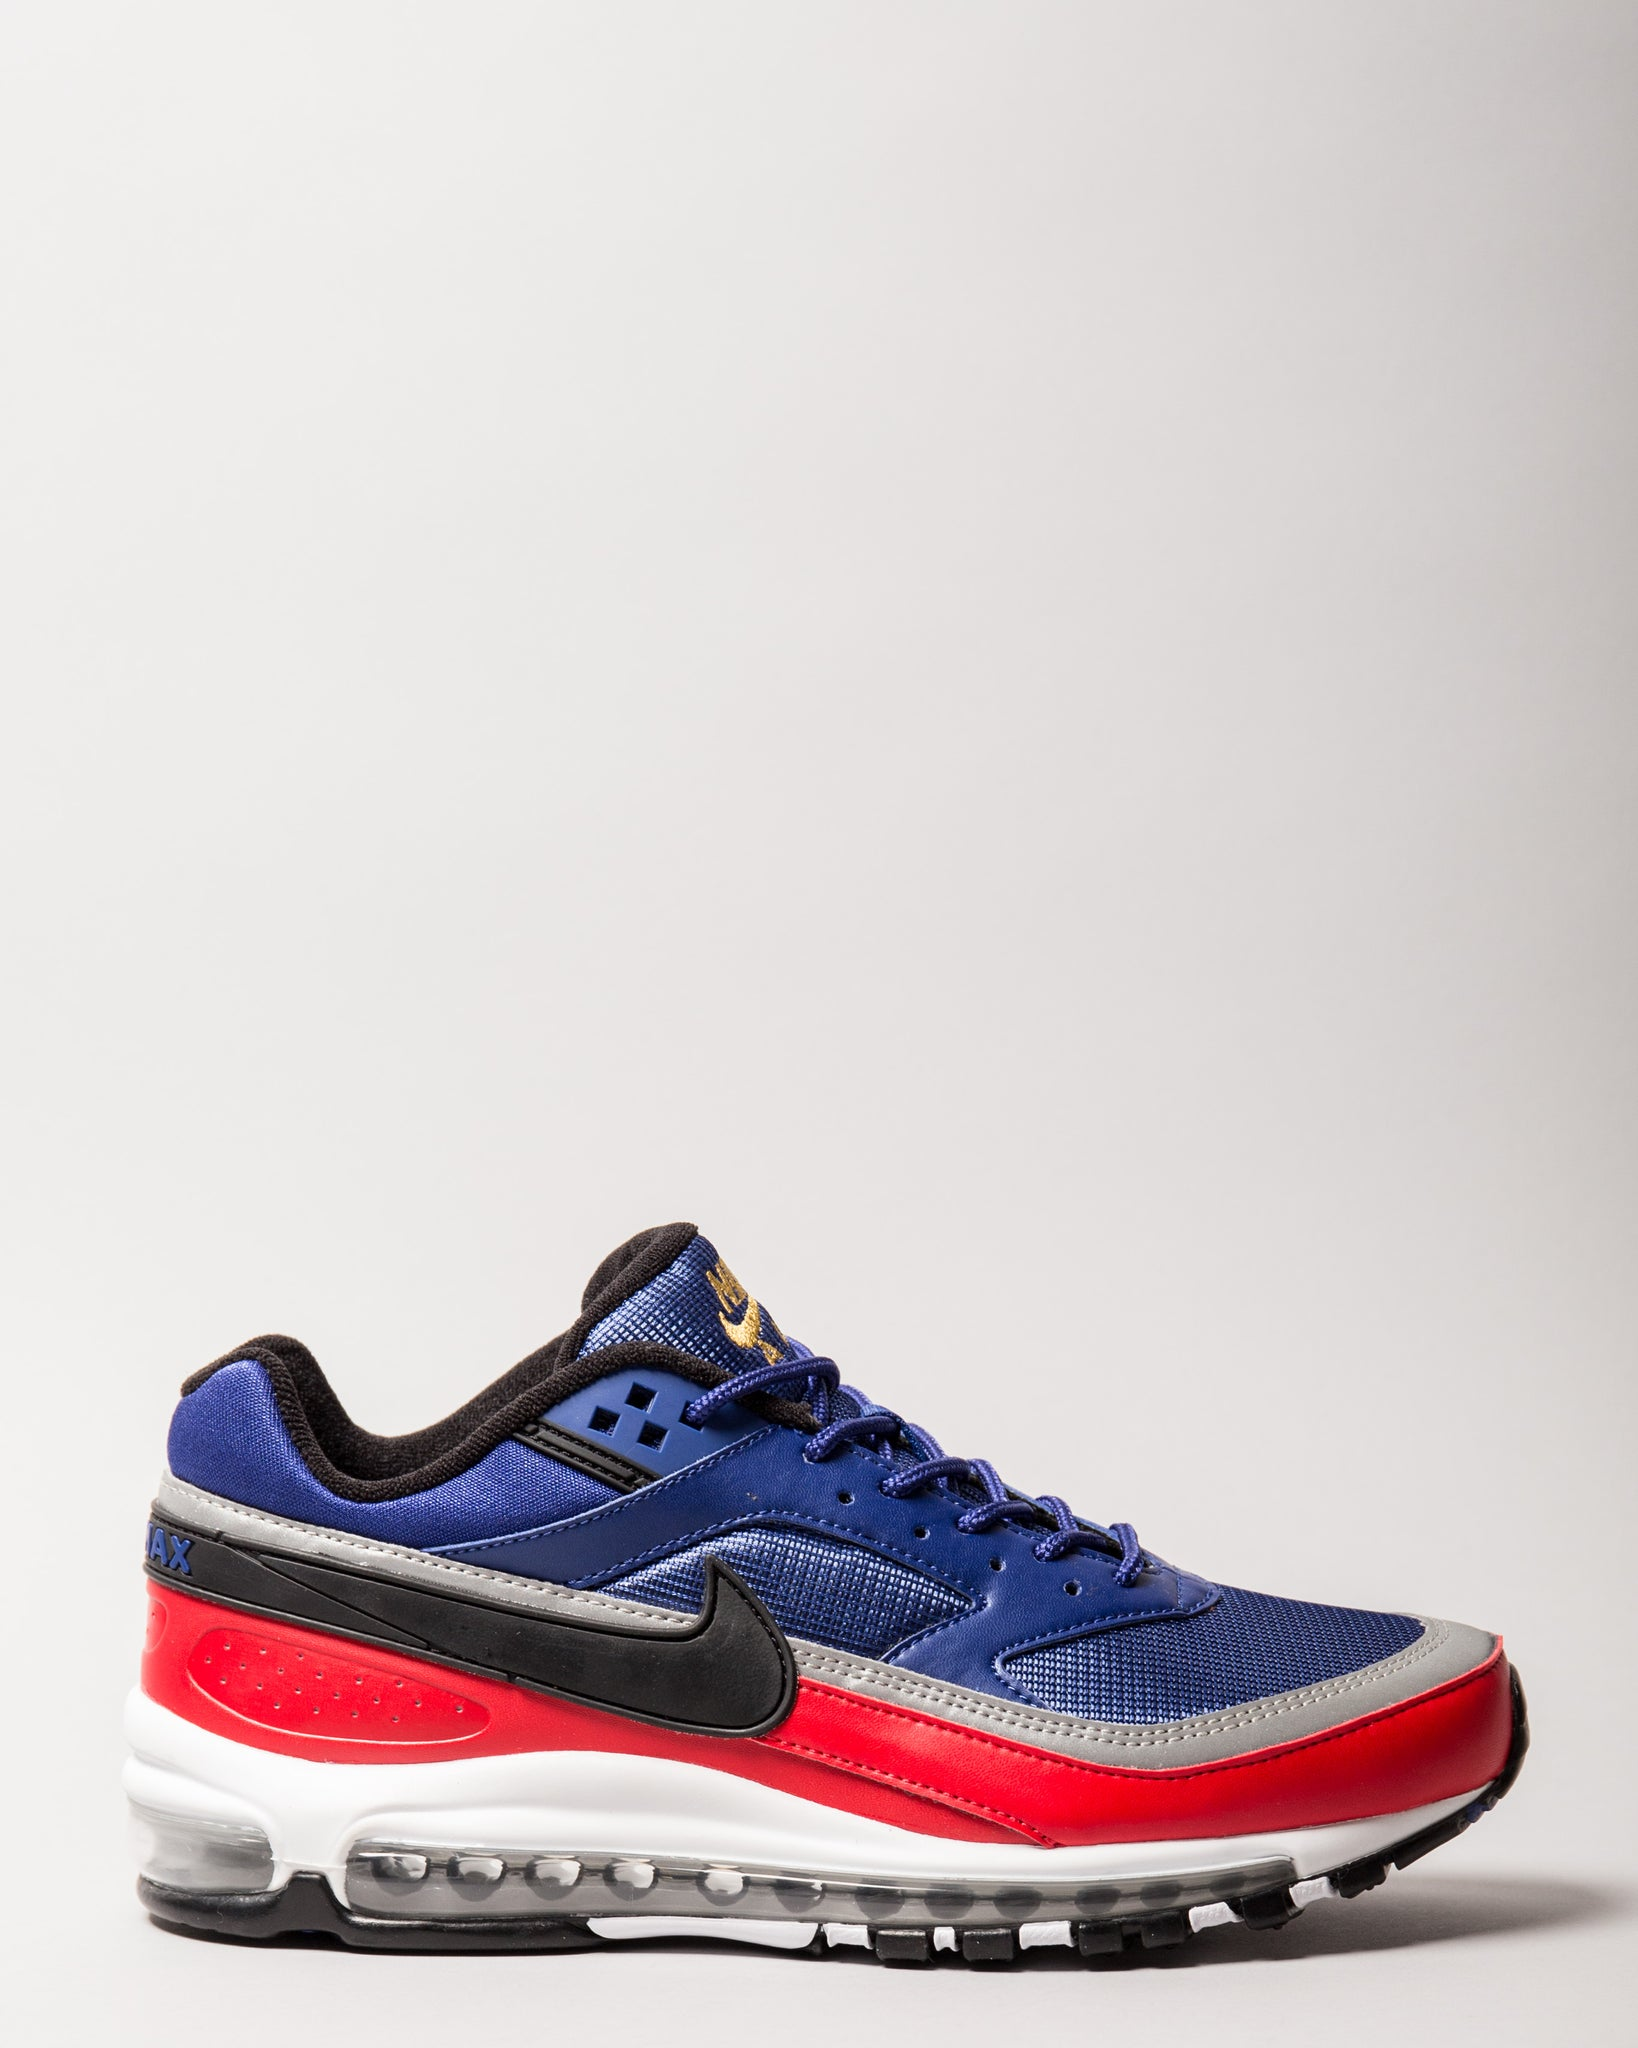 Air Max 97/BW Deep Royal Blue/Black/University Red